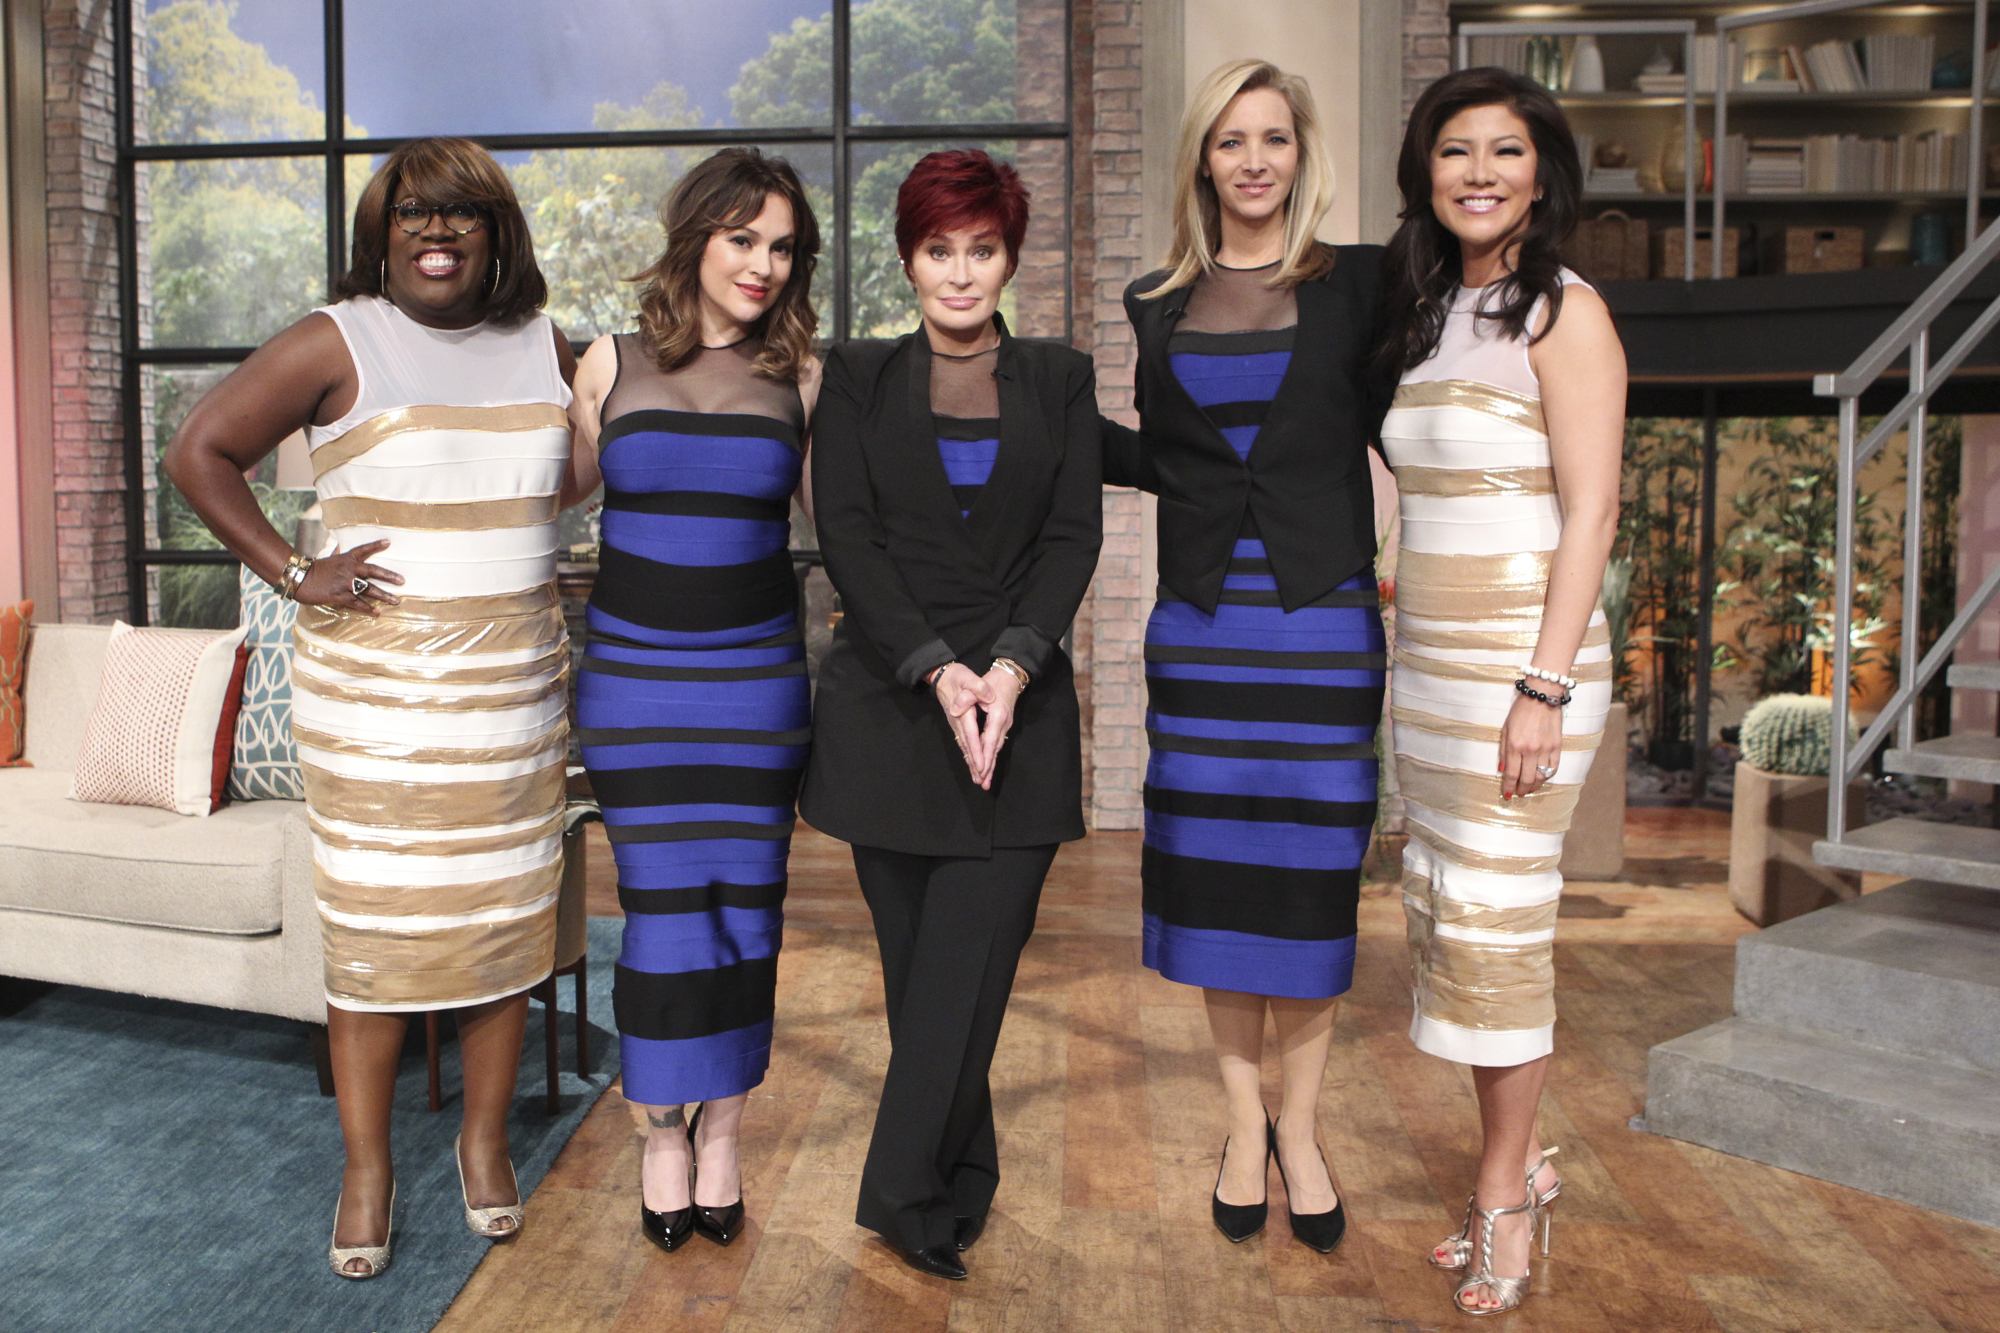 10. White And Gold Or Blue And Black?